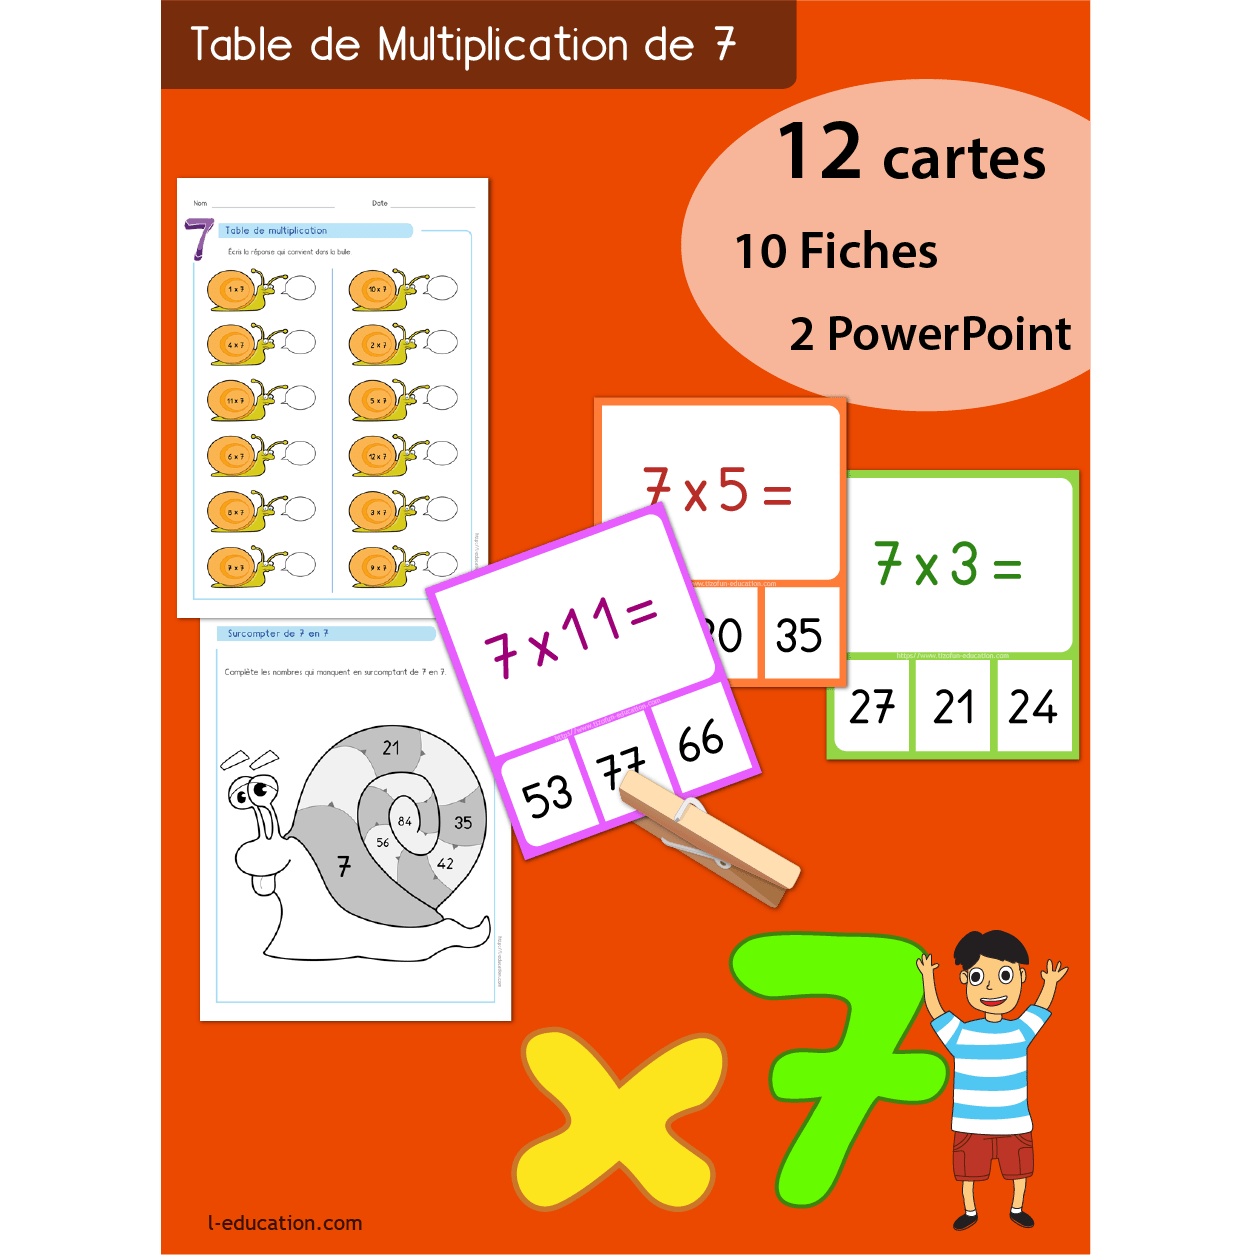 Table De Multiplication De 7 Quiz Interactif Cartes And Fiches Table De Multiplication De 7